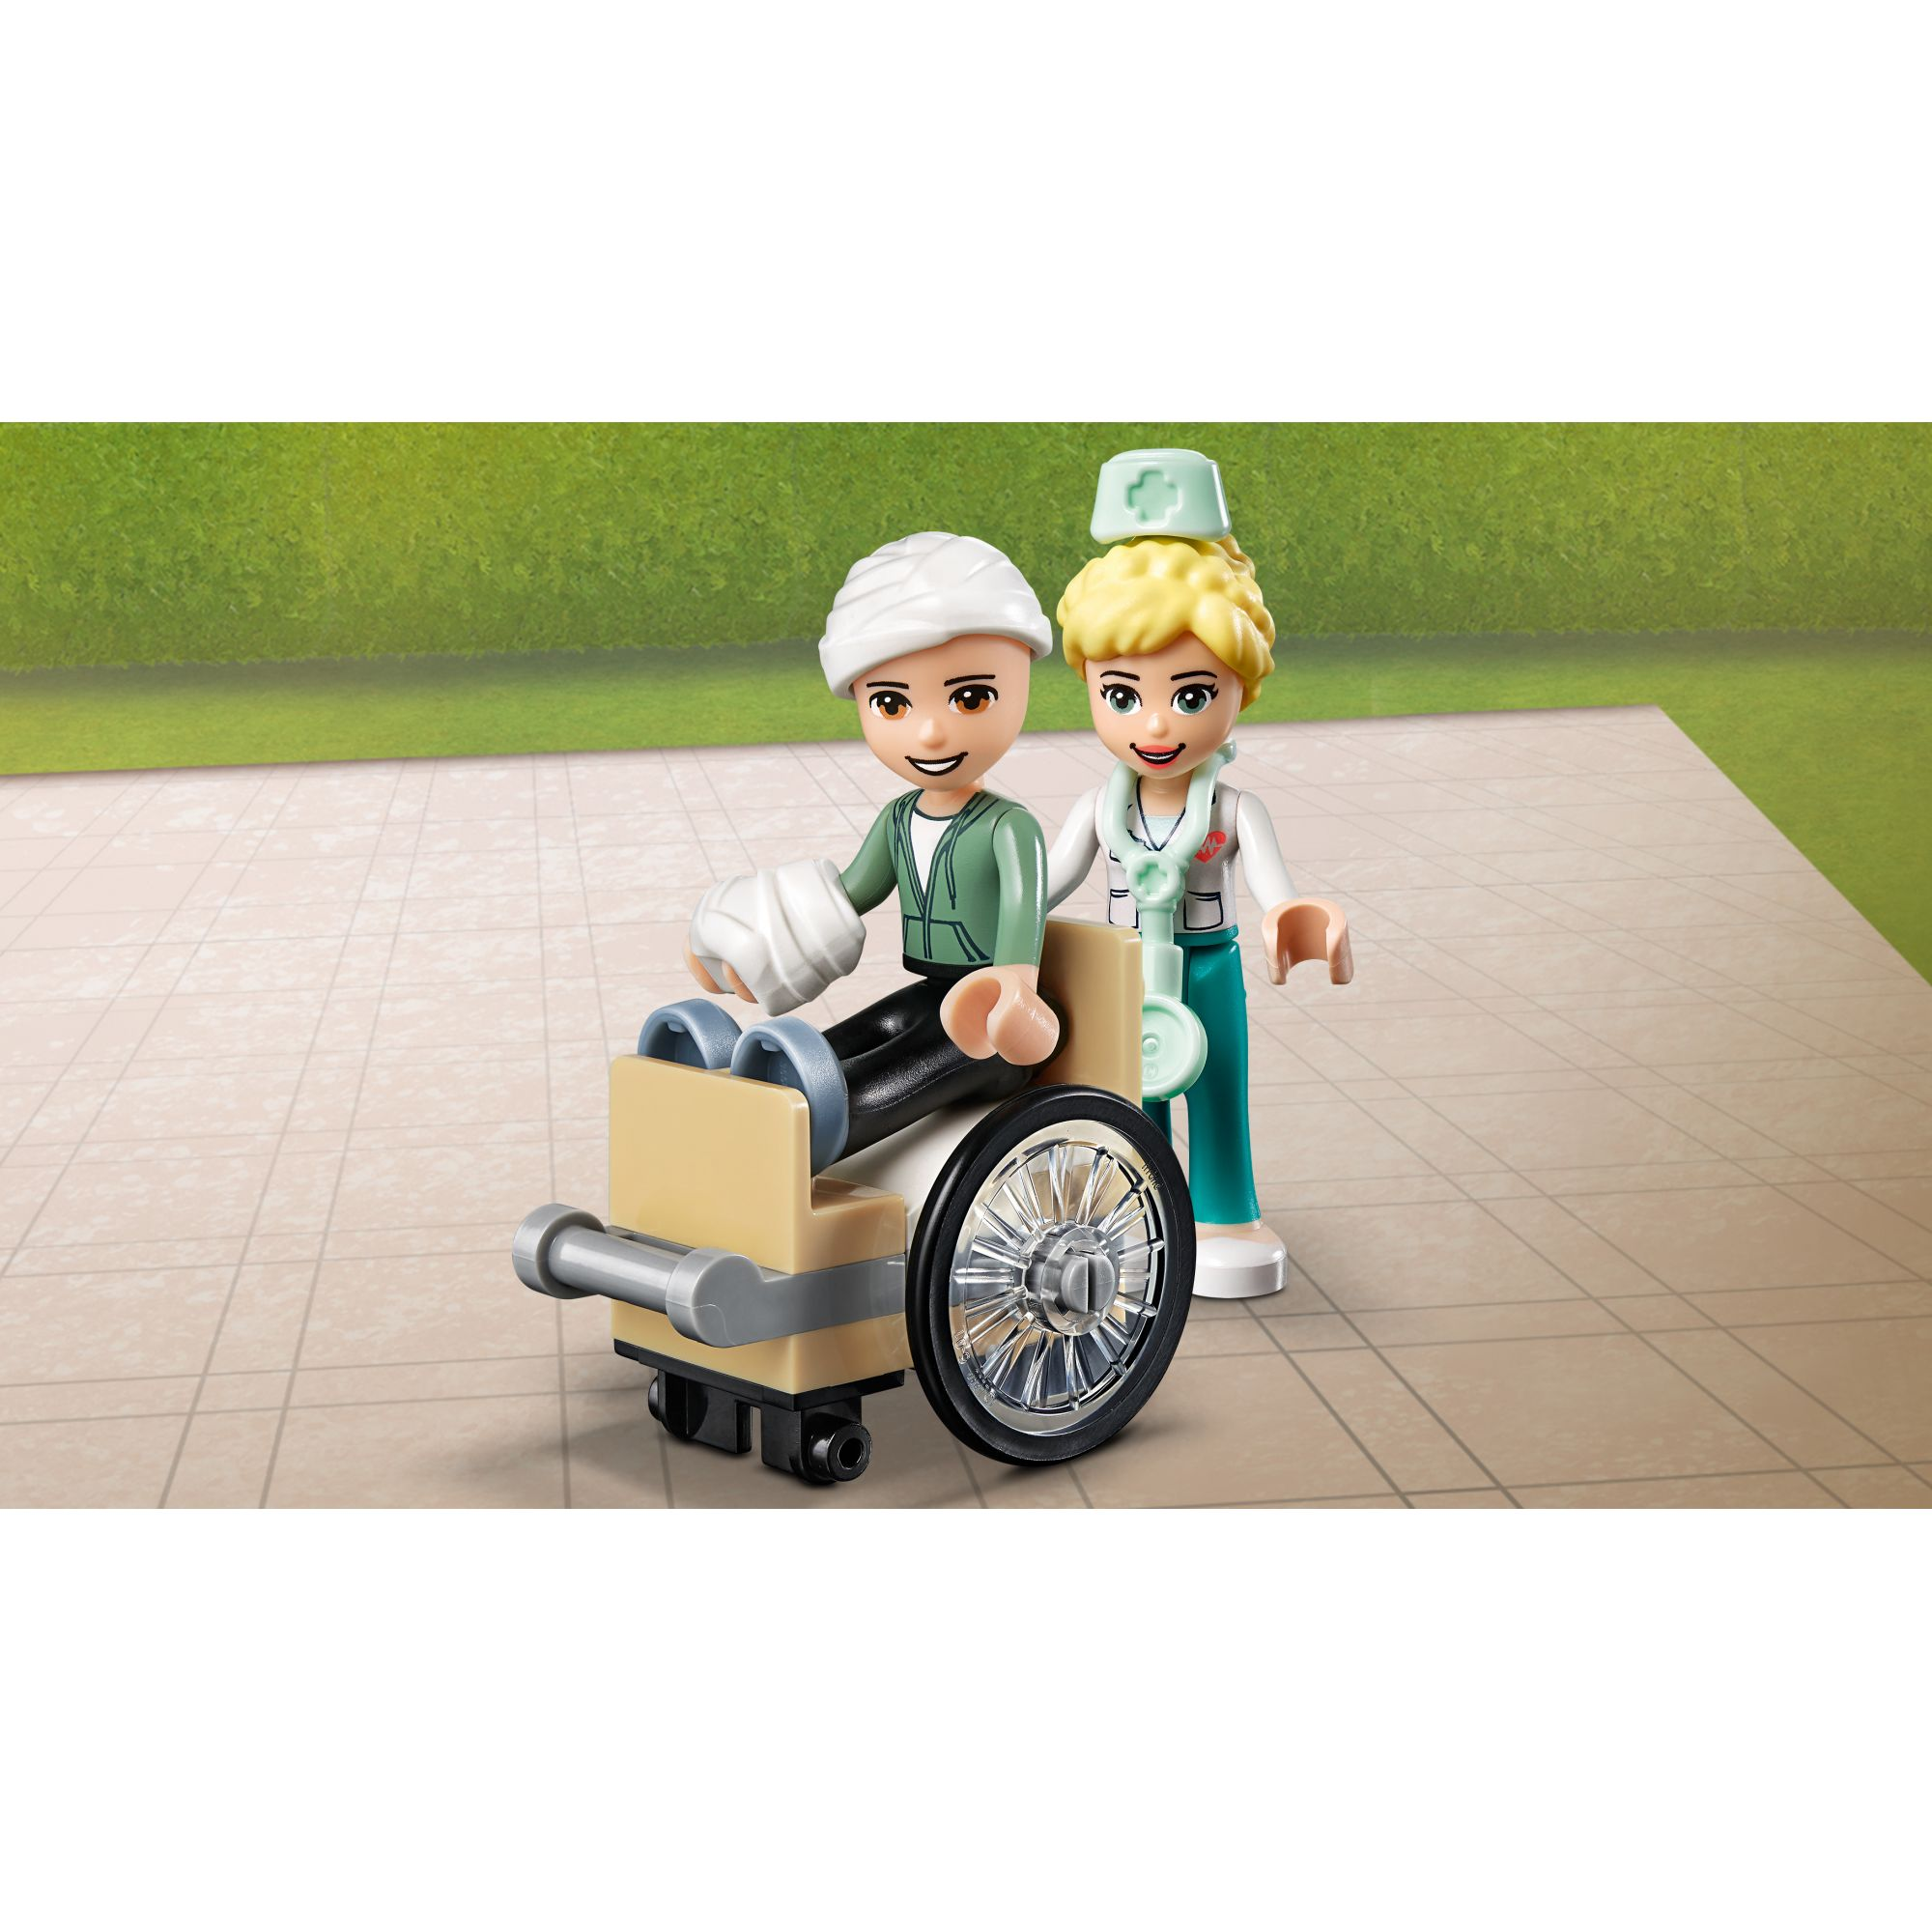 LEGO Friends L'ospedale di Heartlake City - 41394    LEGO FRIENDS